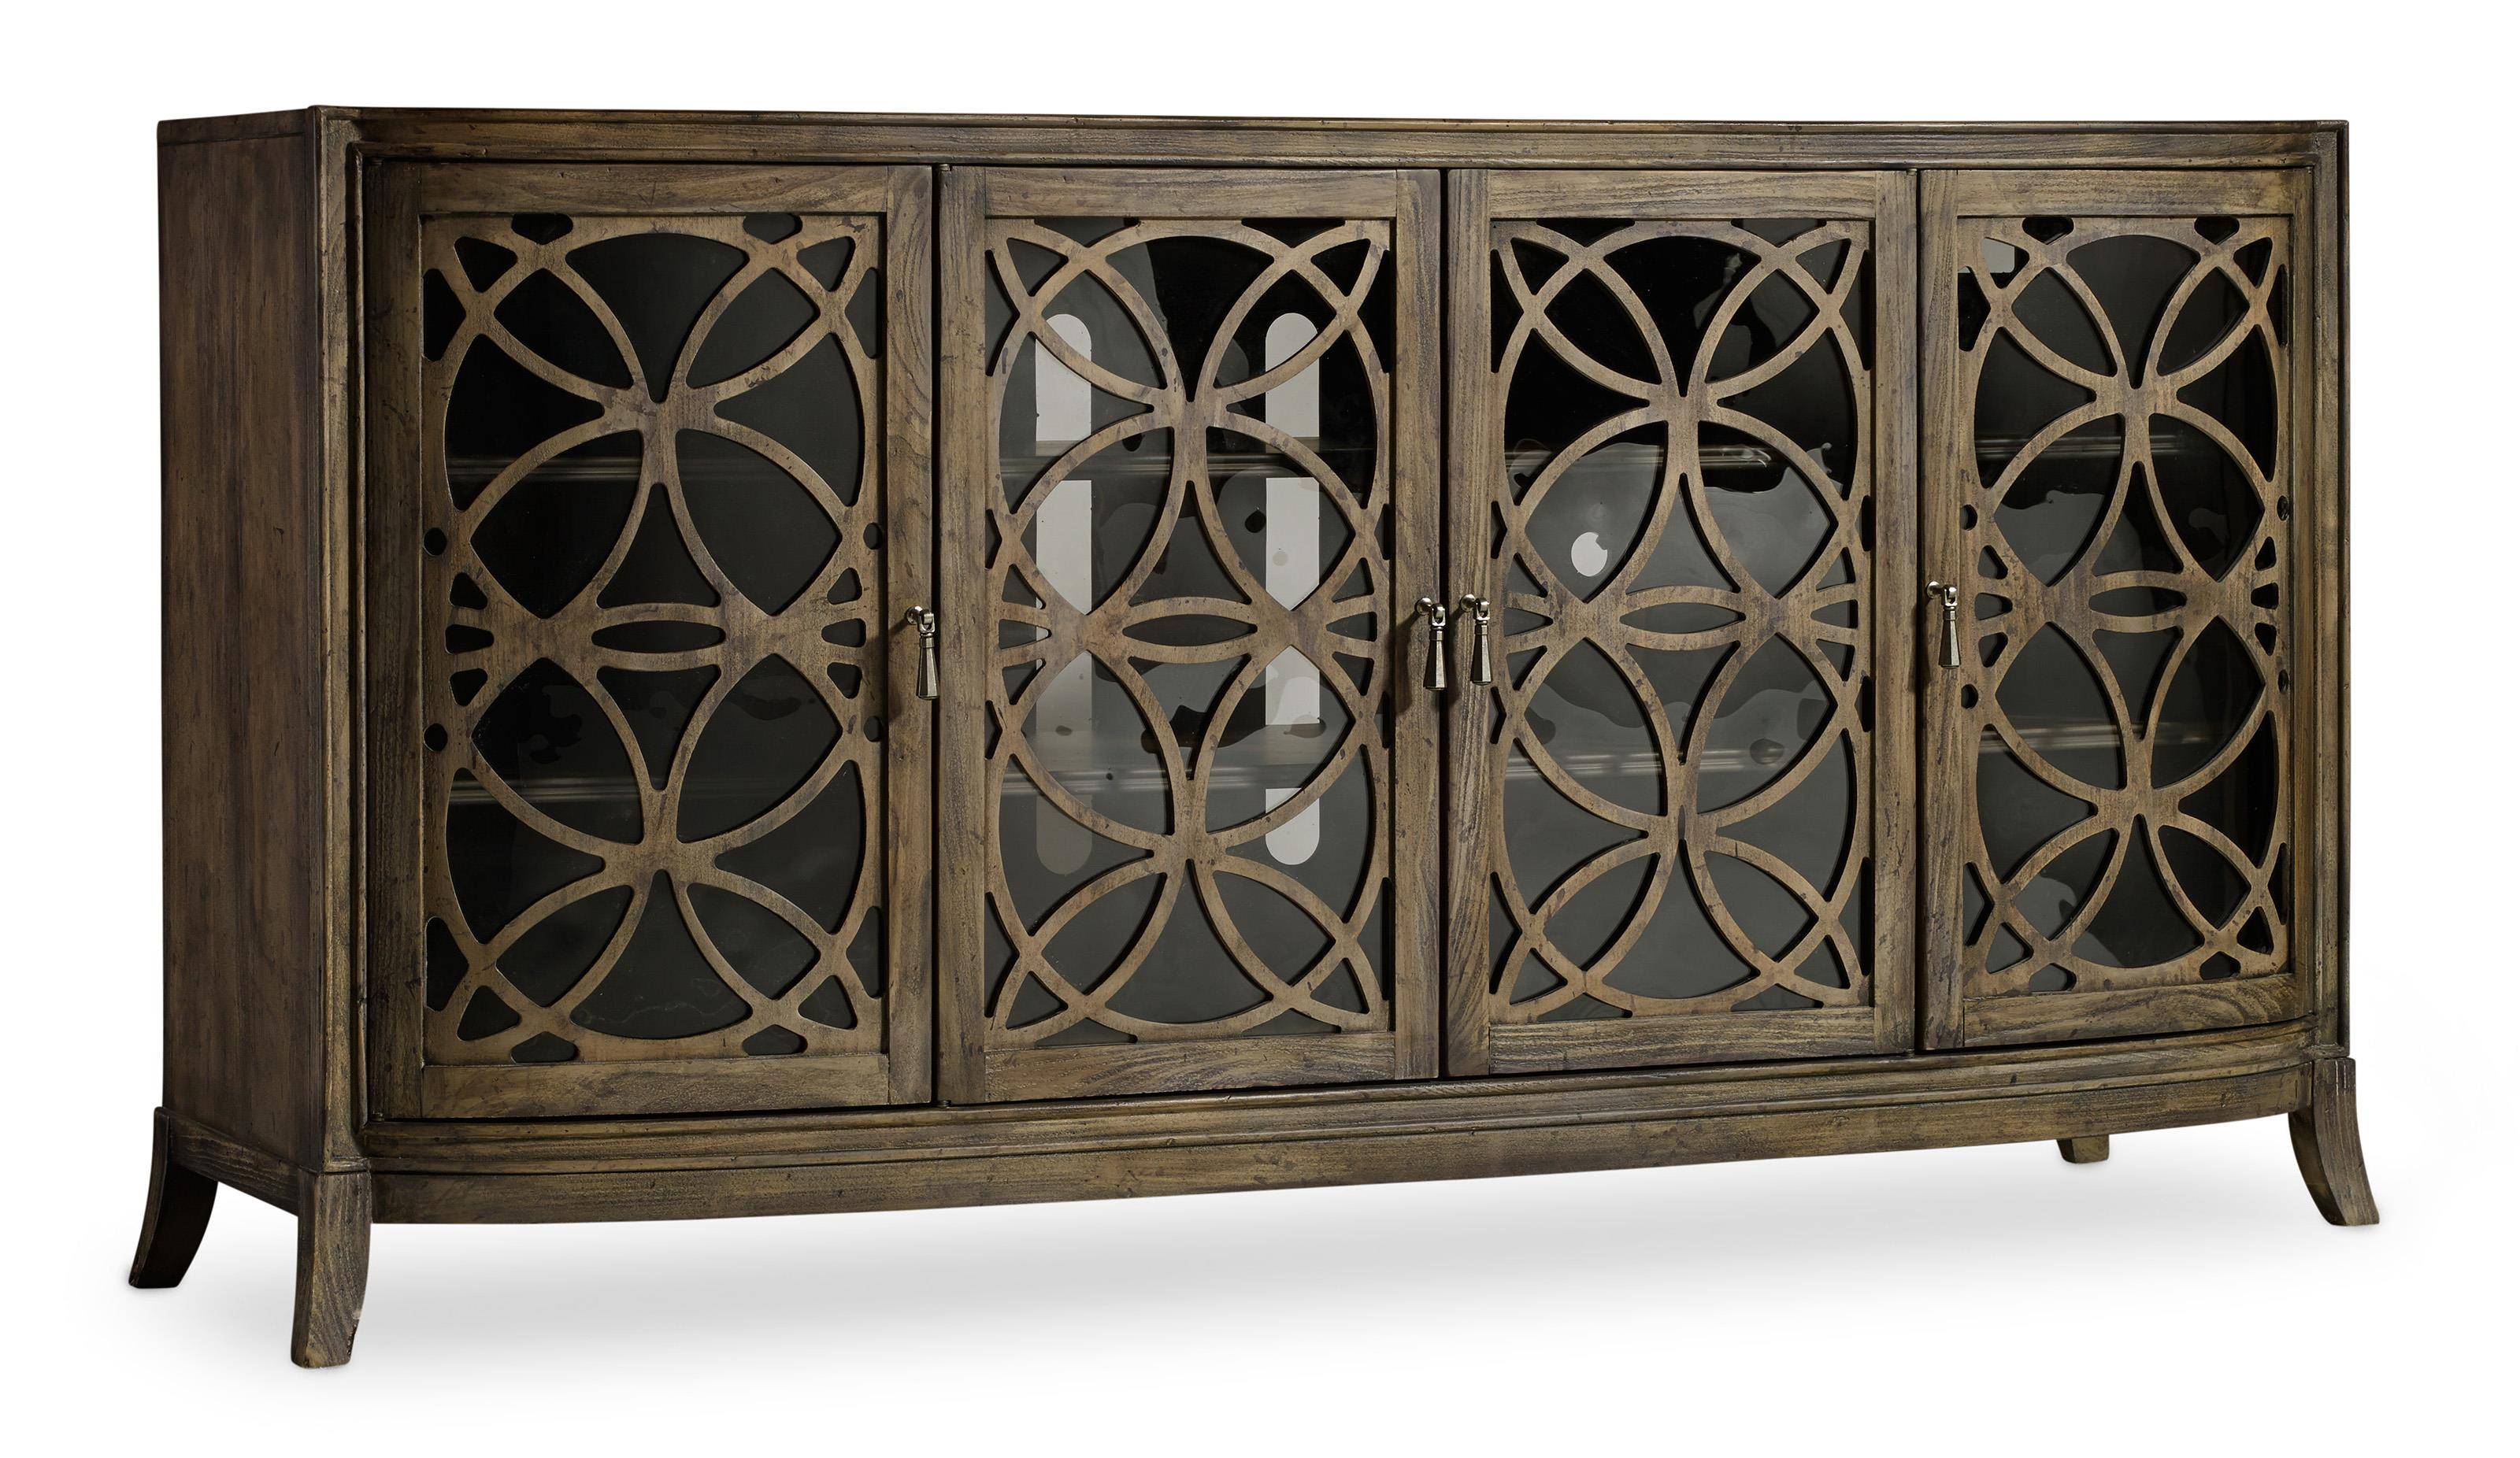 Hooker Furniture Mélange Sloan Console - Item Number: 638-55010